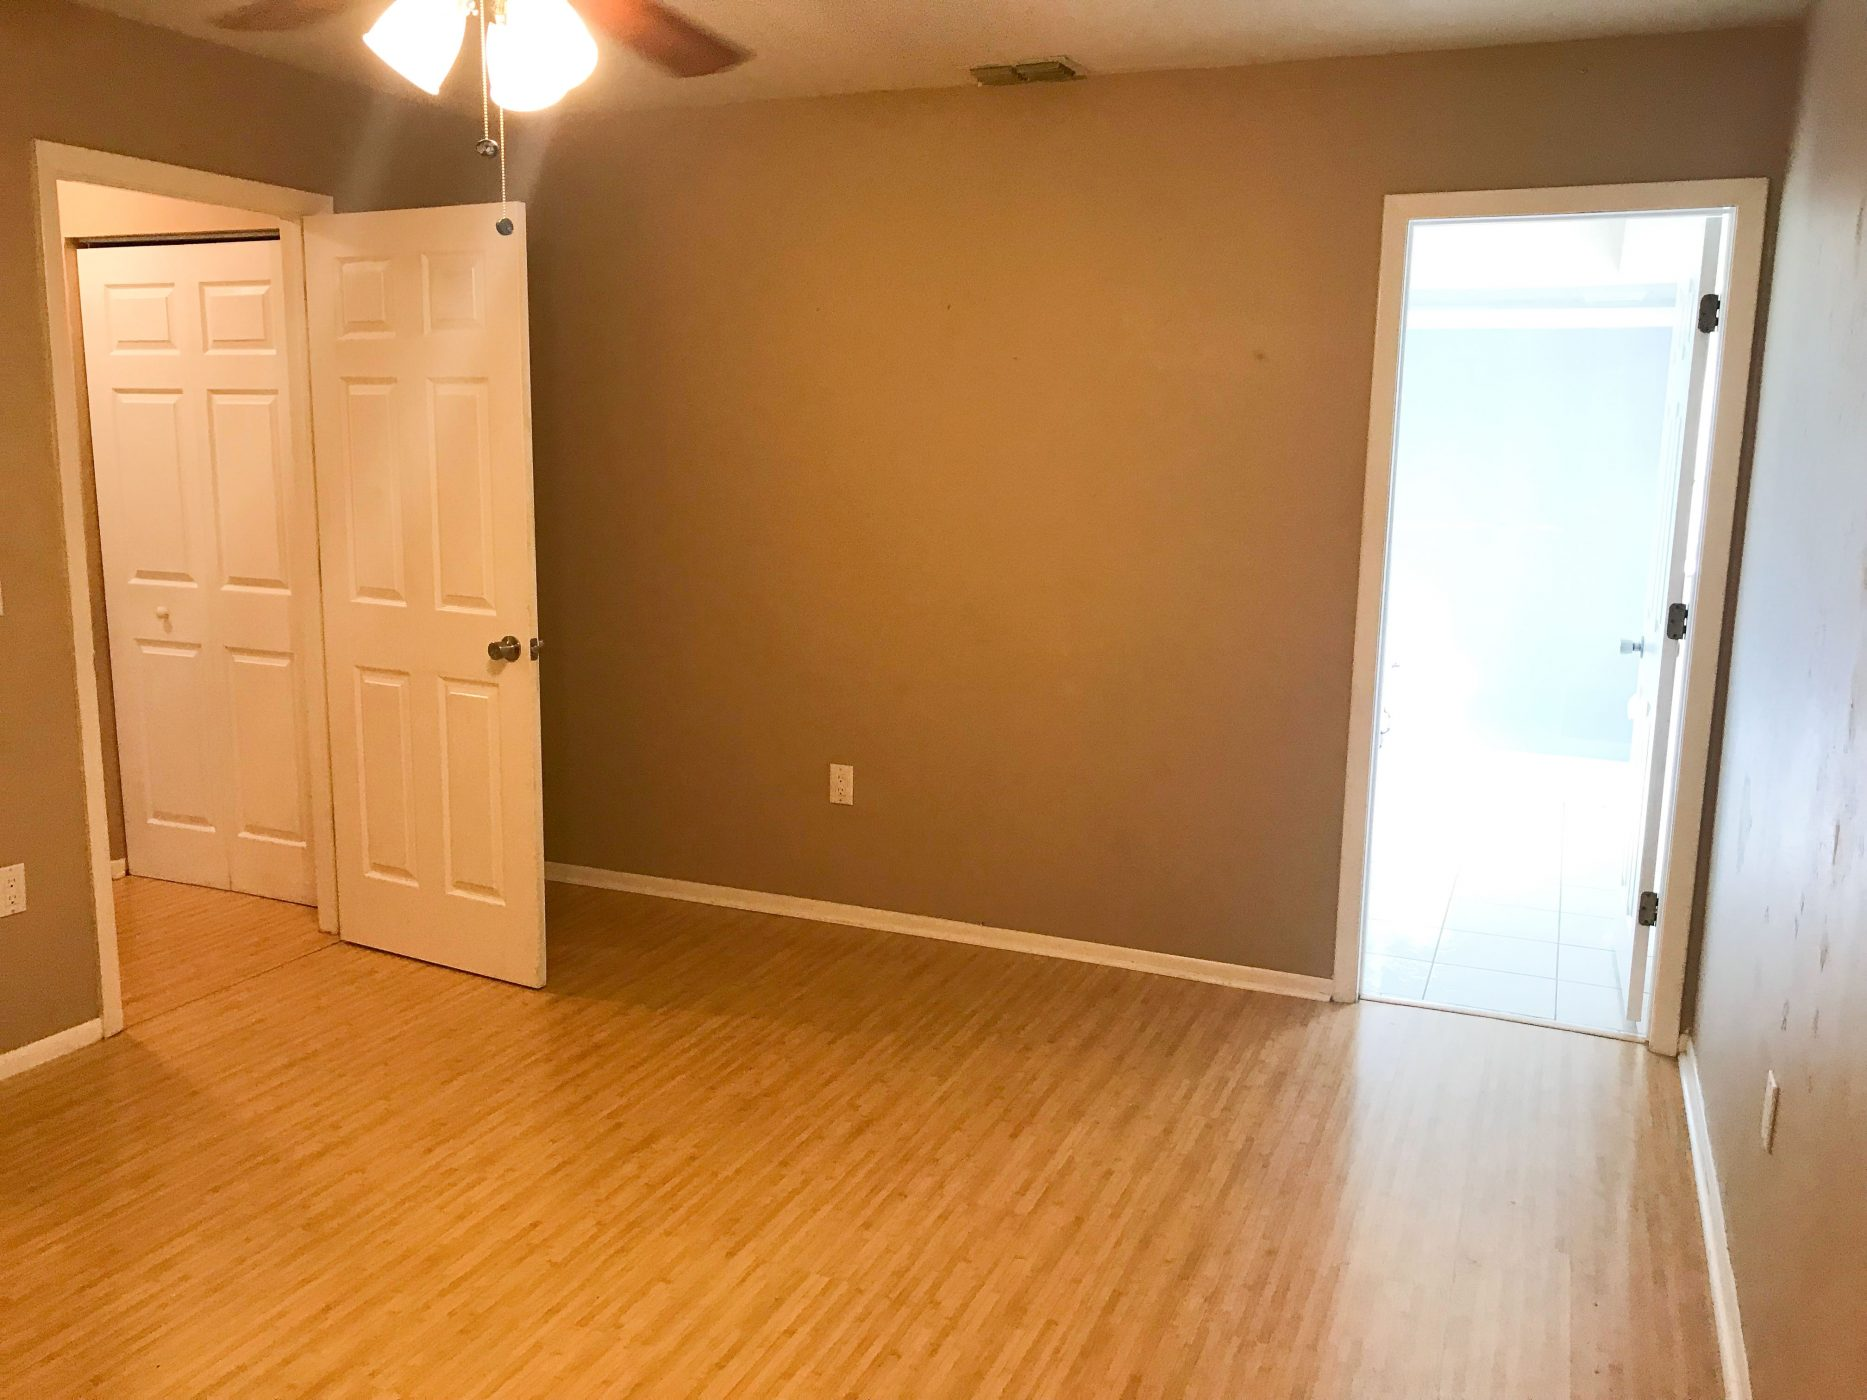 We Bought A House - Bedroom Before Photo - Sweet Teal